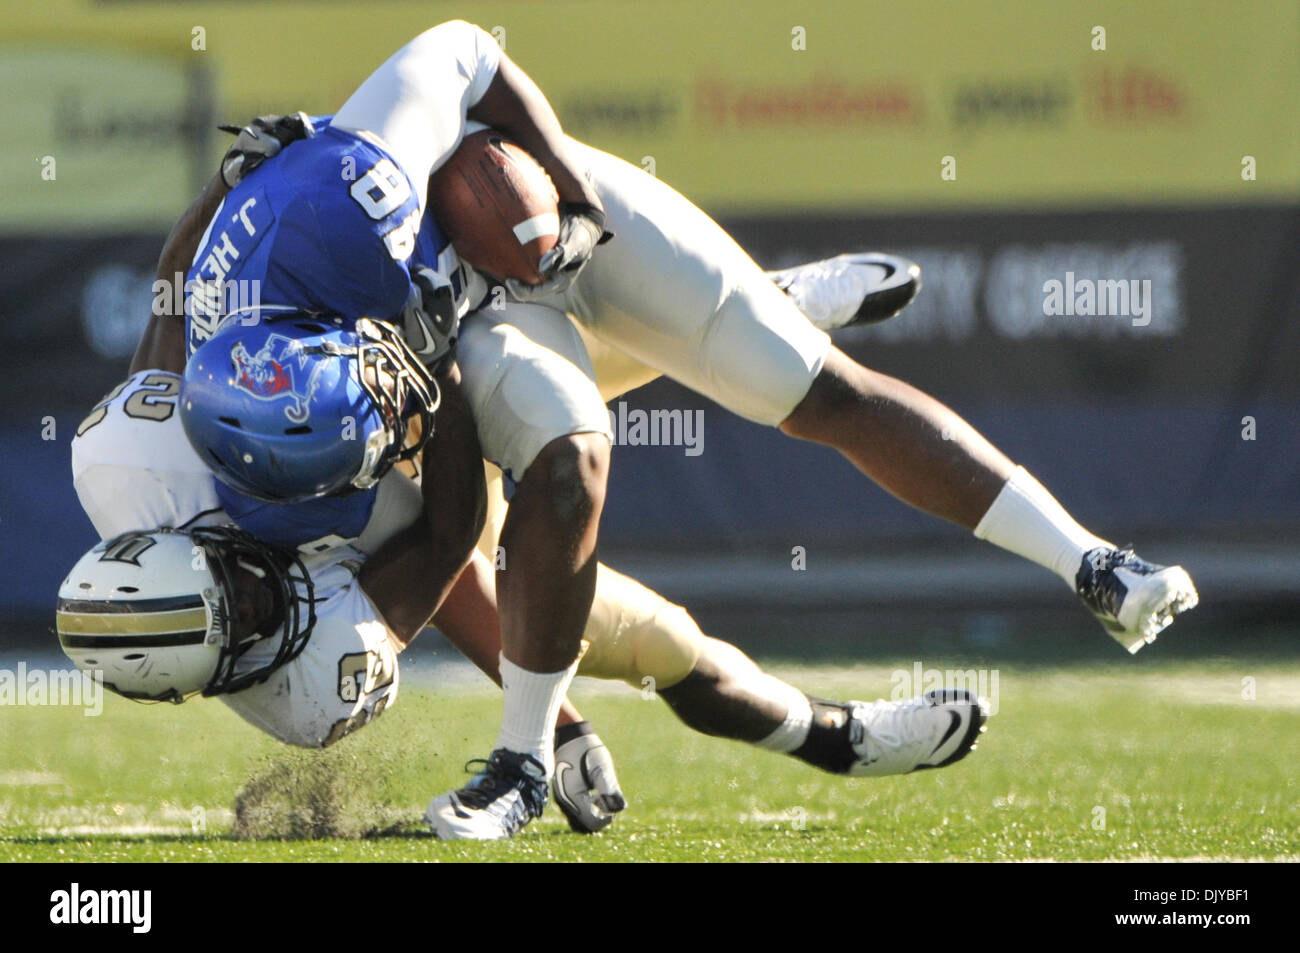 Nov. 27, 2010 - Memphis, Tennessee, United States of America - UCF Knights cornerback Emery Allen (22) pulls down Memphis Tigers running back Marquez Allen (48) during the NCAA regular season game between the UCF Knights at Memphis Tigers at the Liberty Bowl Memorial Stadium. UCF Knights defeat the Memphis Tigers 37 - 17 final. (Credit Image: © Danny Reise/Southcreek Global/ZUMAPRE - Stock Image